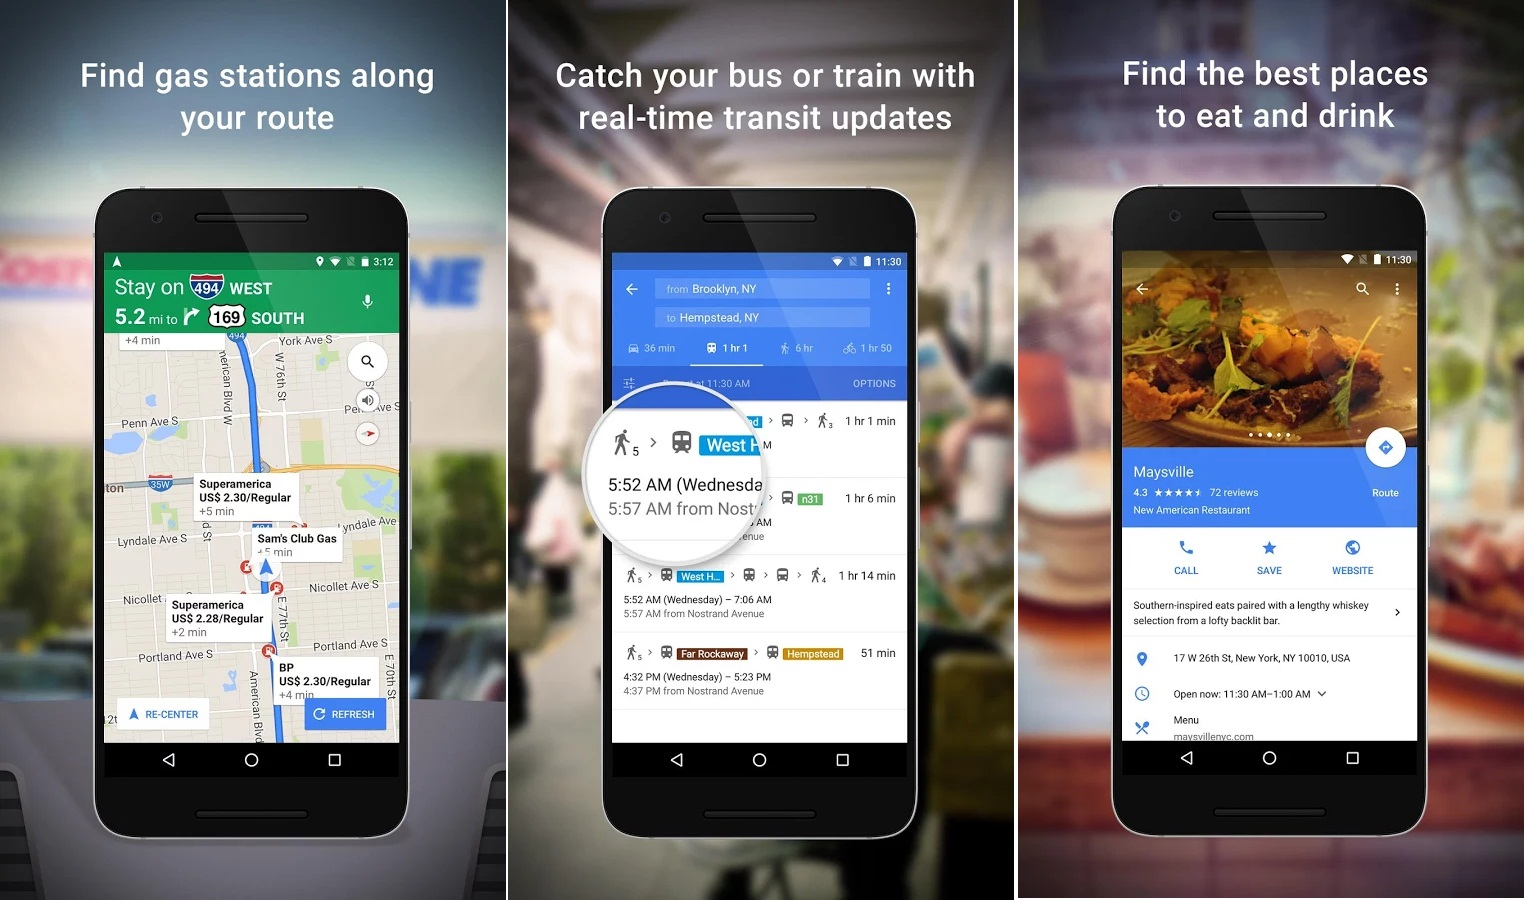 ANDROID APPS 2017, techloudgeek.com, techloudgeek, Google Maps